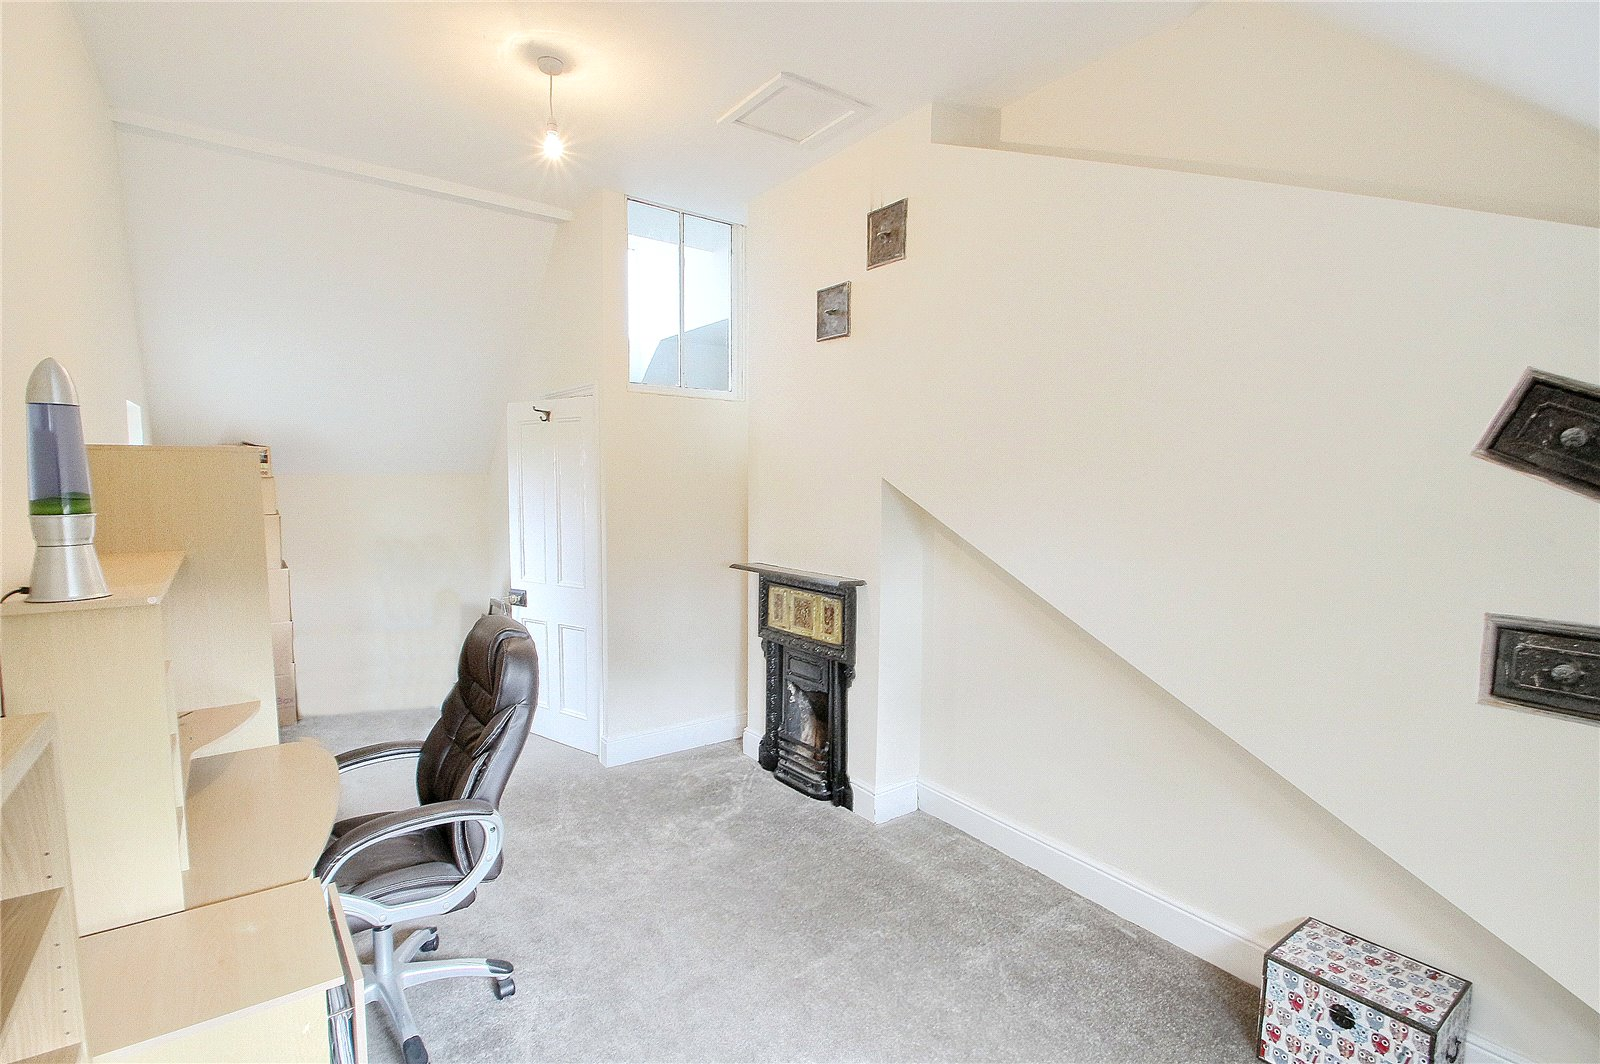 7 bed house for sale in Richmond Road, Stockton-on-Tees  - Property Image 20